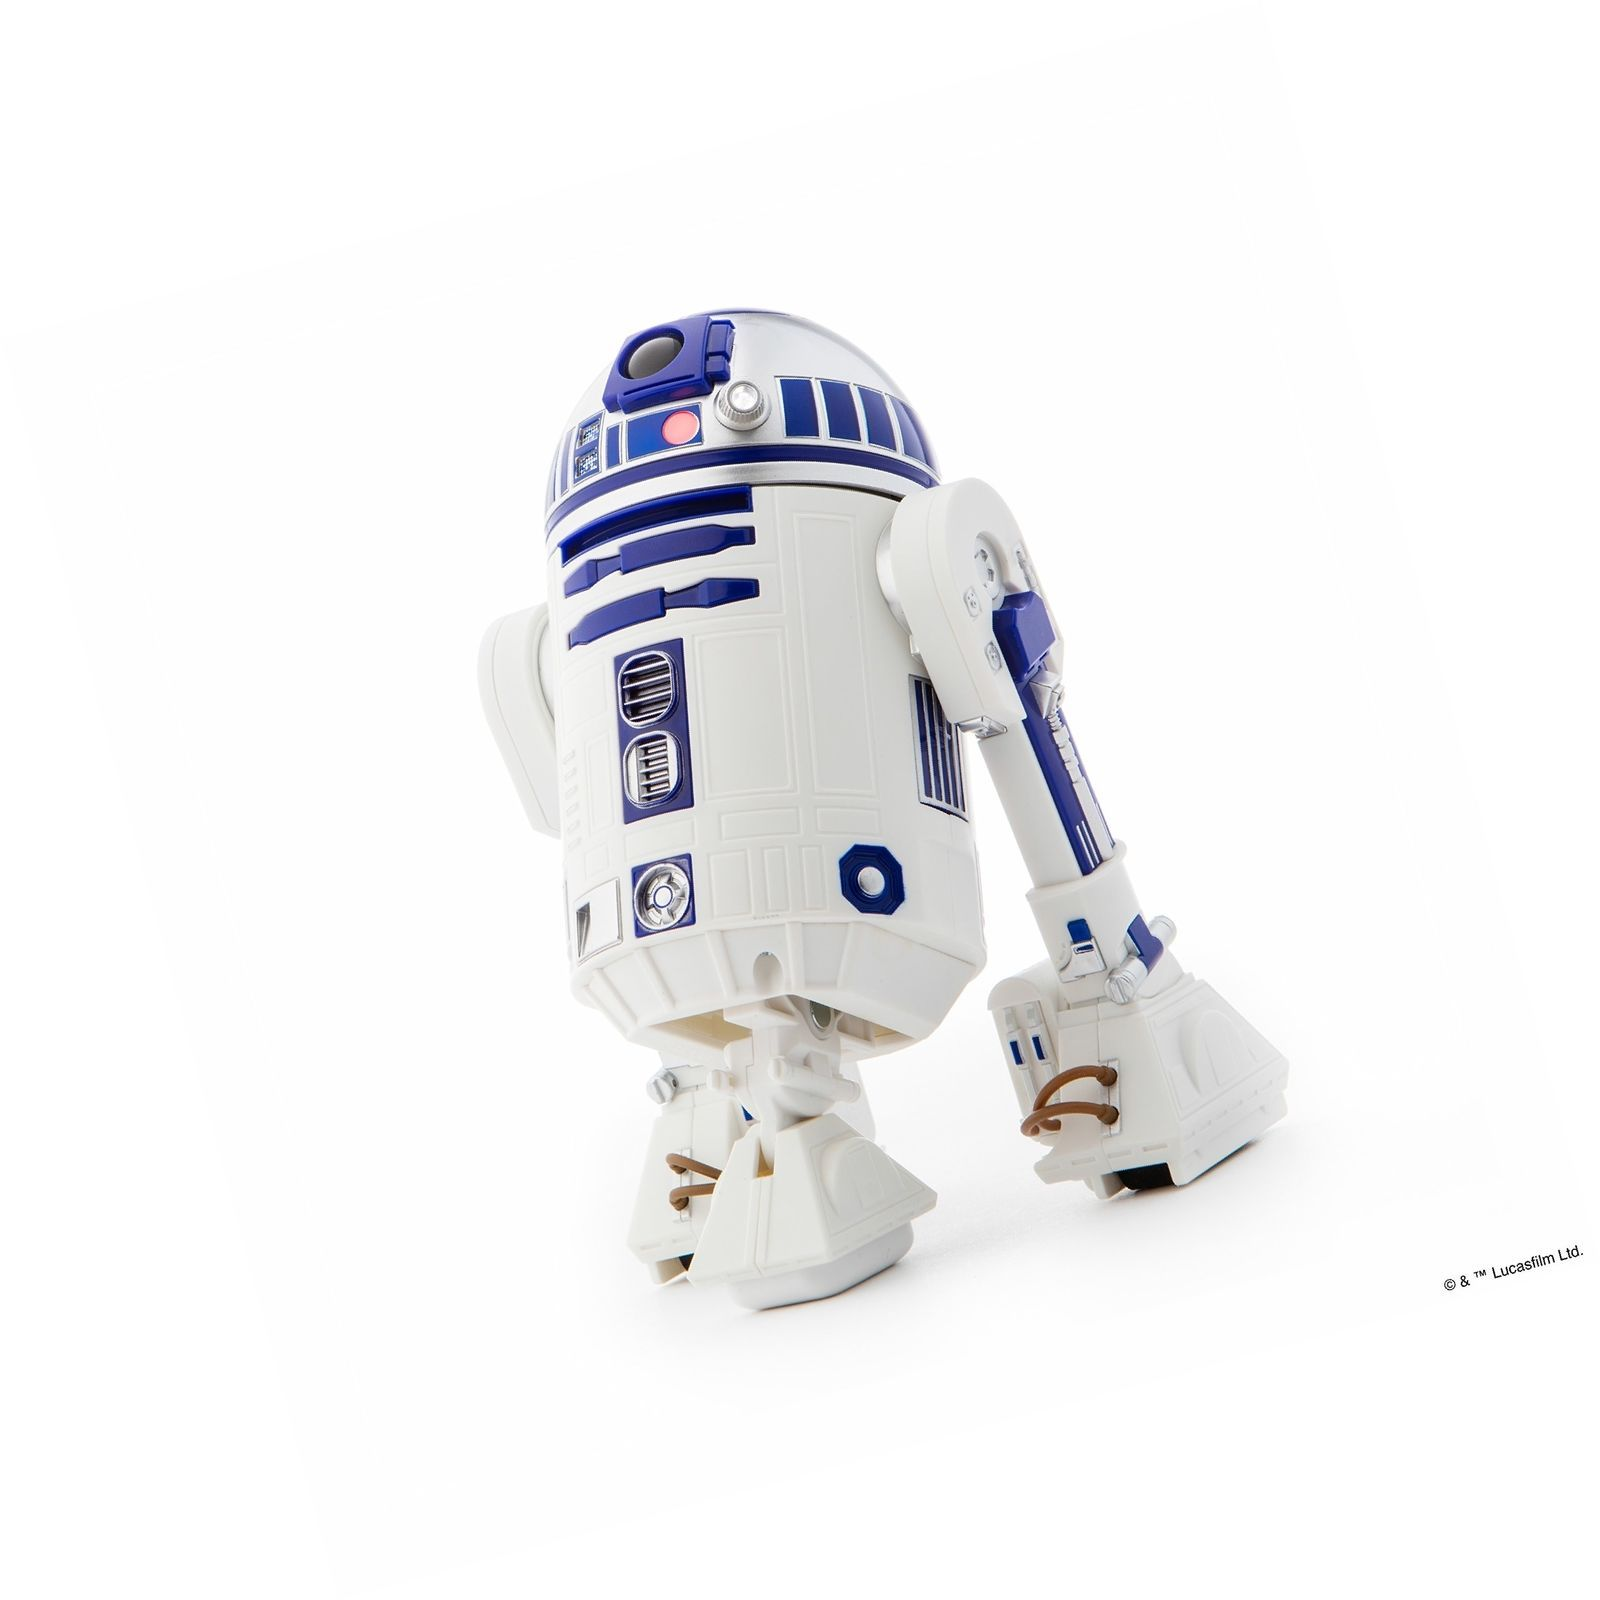 Sphero R2-D2 App-Enabled Droid R2-D2 Droid - New